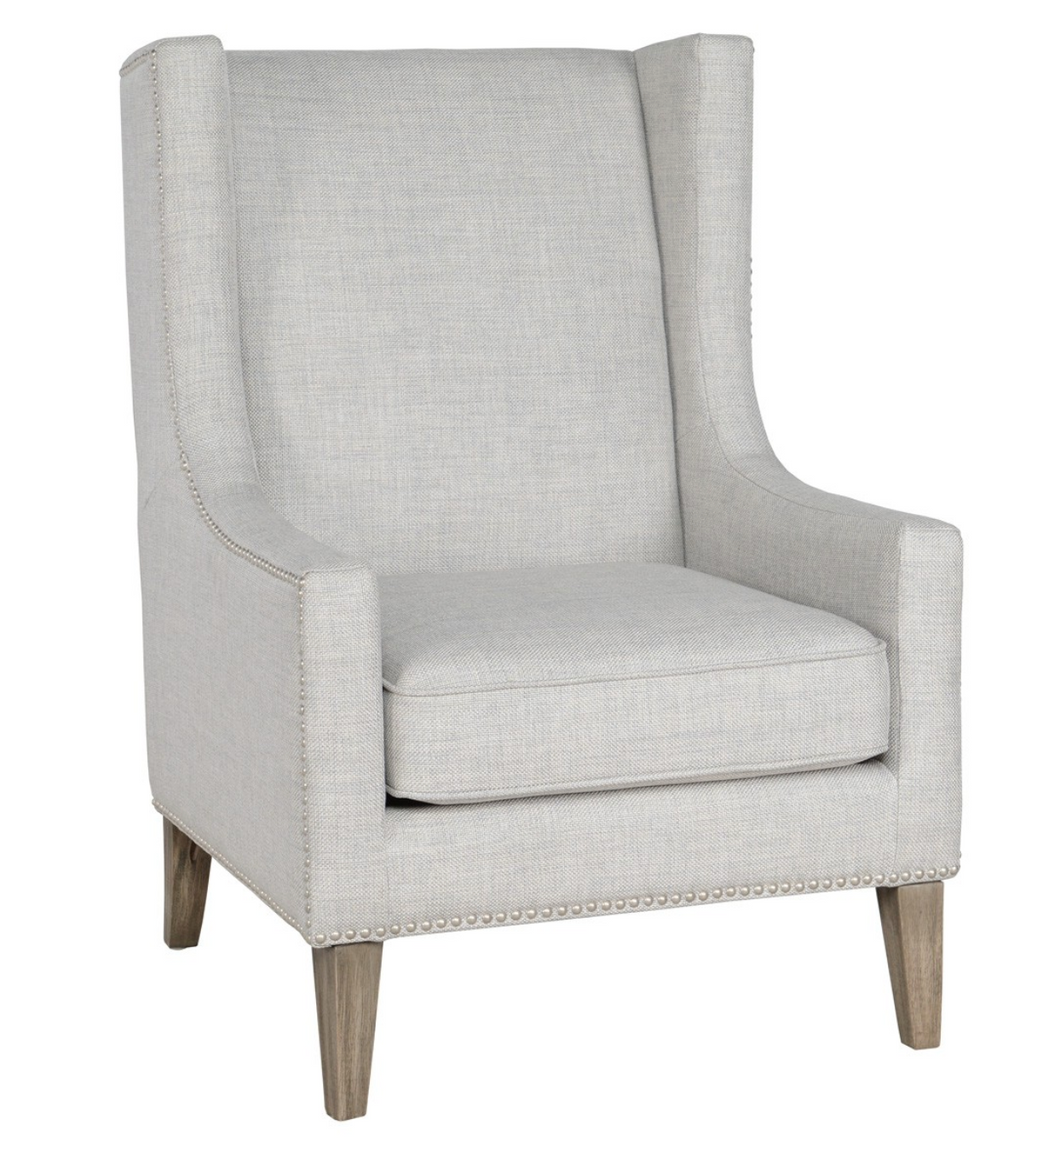 Gray Erie Club Chair, Home Furnishings, Laura of Pembroke